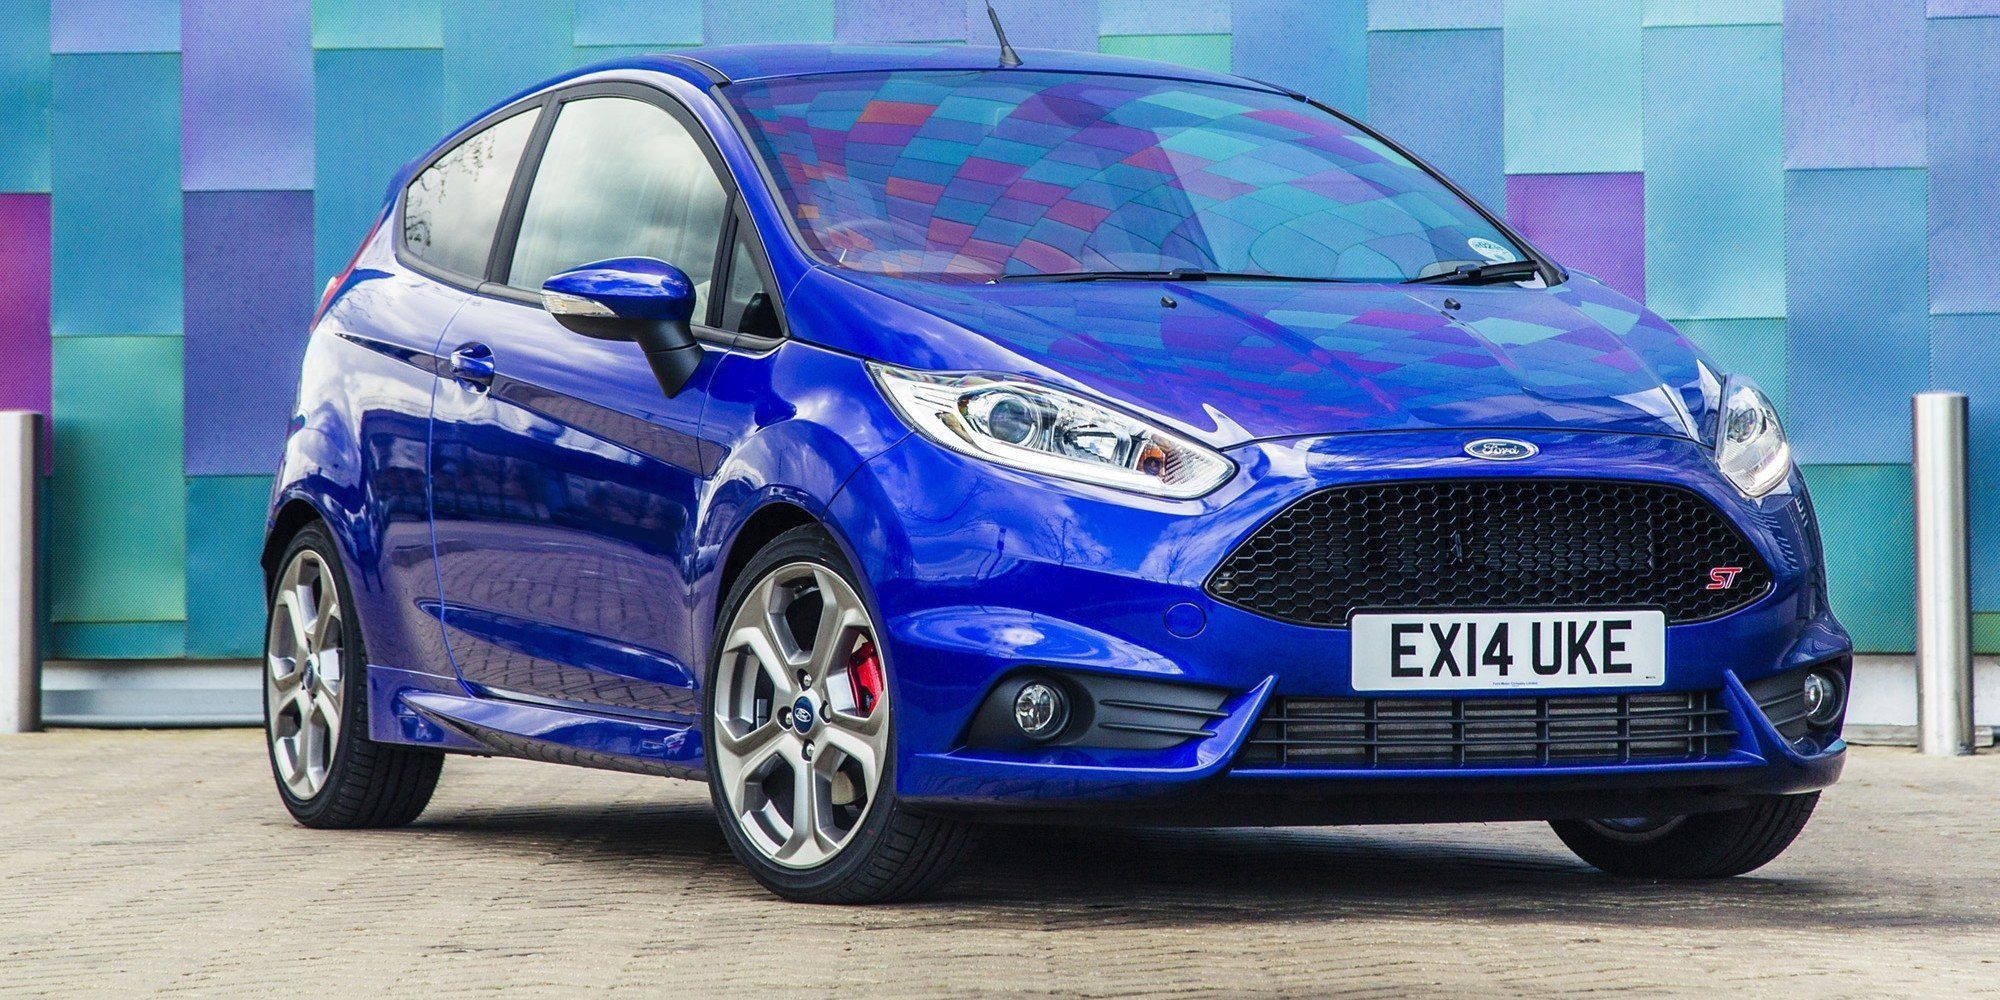 2021 ford Fiesta Configurations in 2020 Ford fiesta st